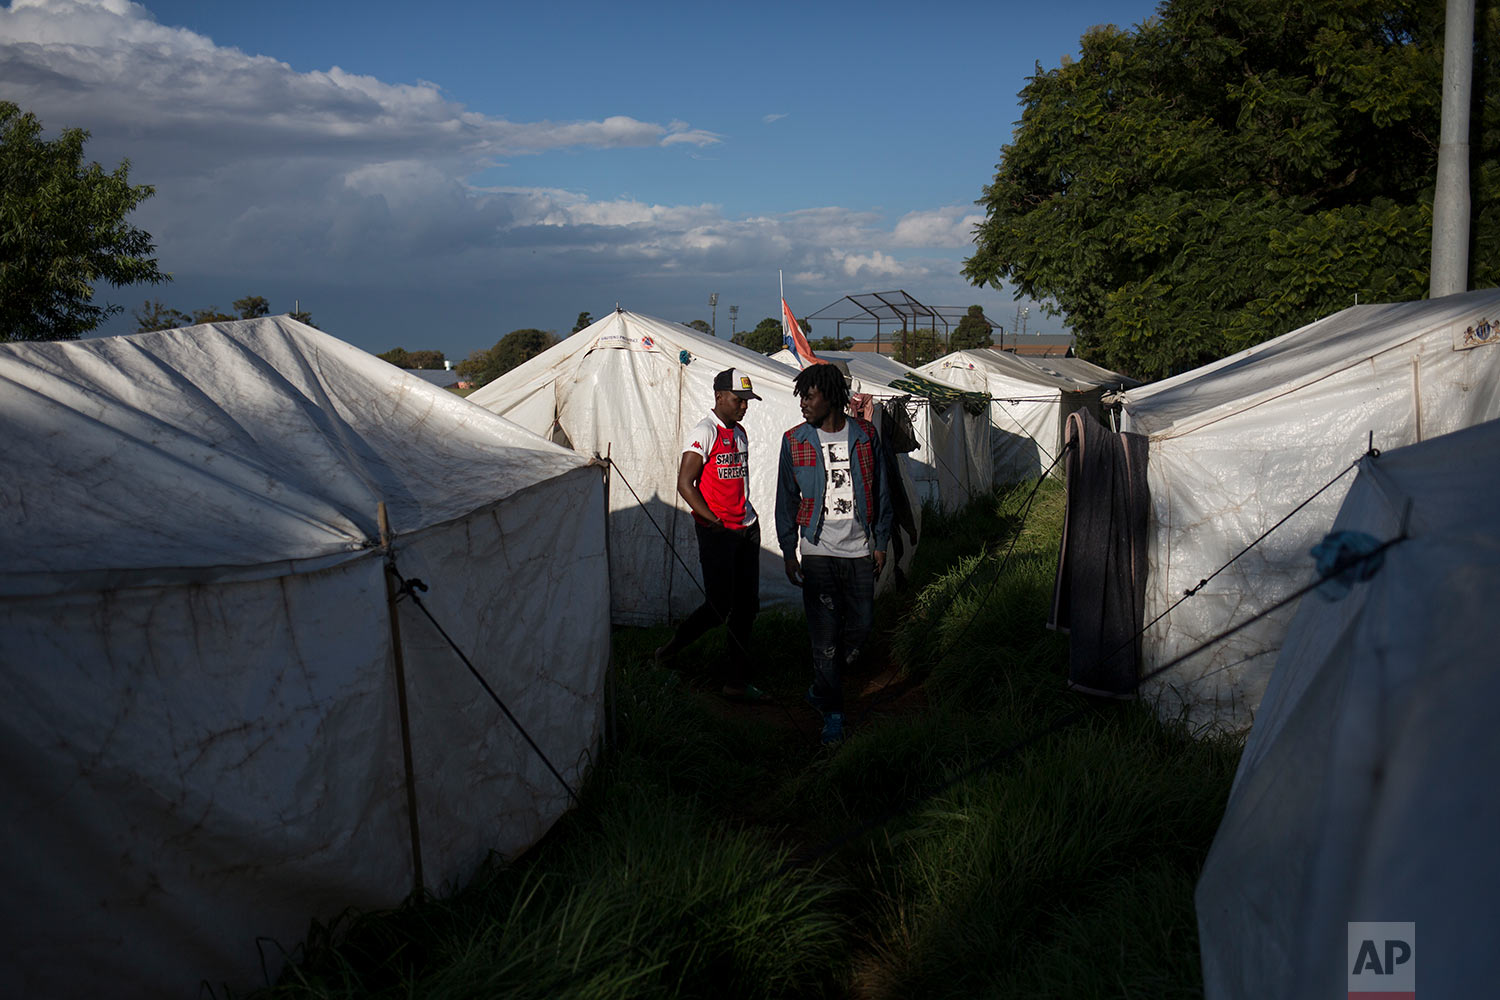 Migrants walk amid tents provided by the city government after they were evicted. April 19, 2018. (AP Photo/Bram Janssen)